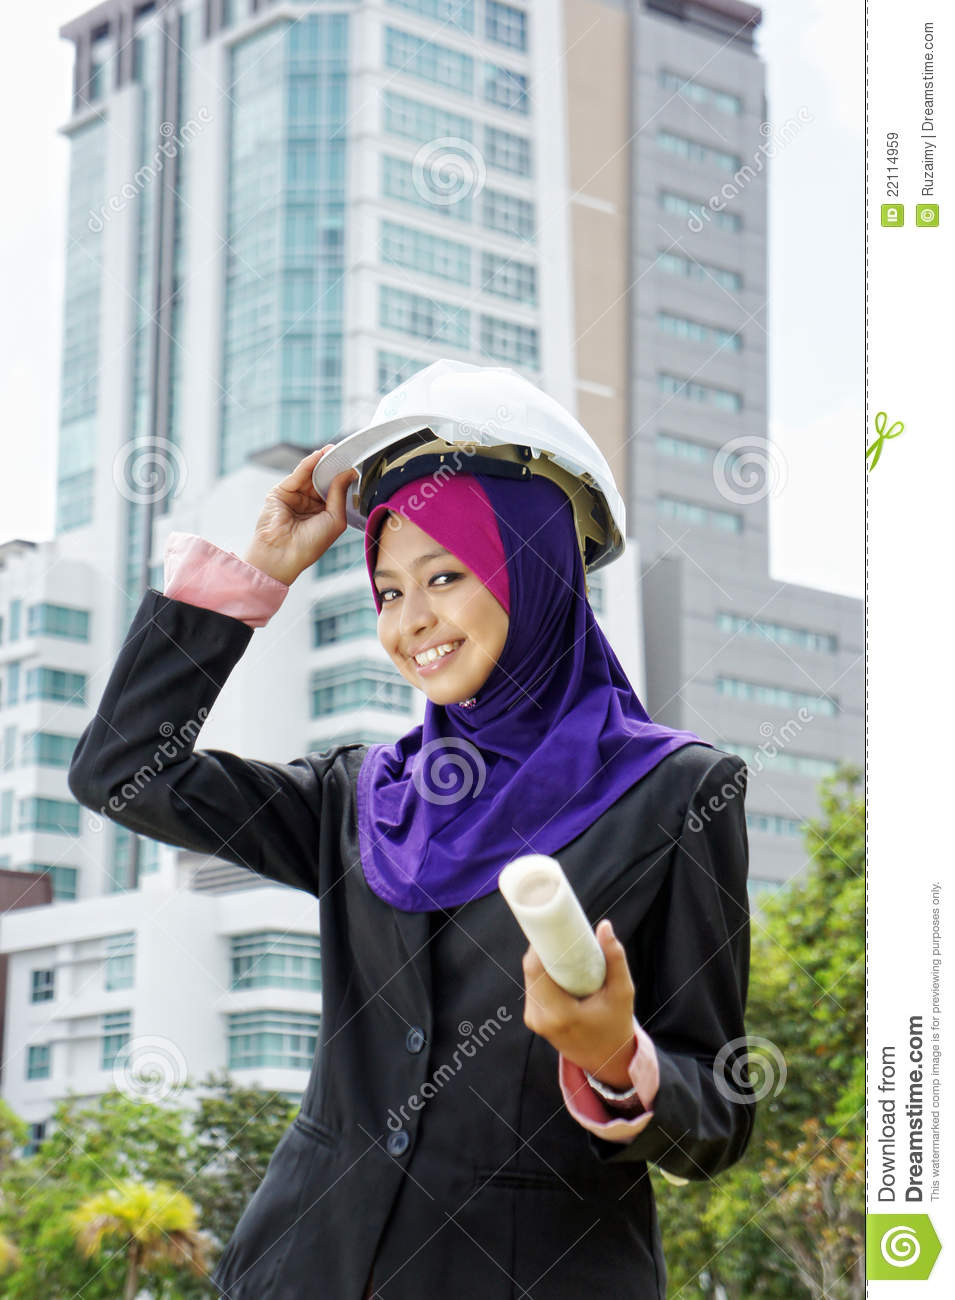 wainwright single muslim girls See how kik has worked with brands to drive record high impressions and engagement resource hub become an expert on all things chat explore articles and reports to.